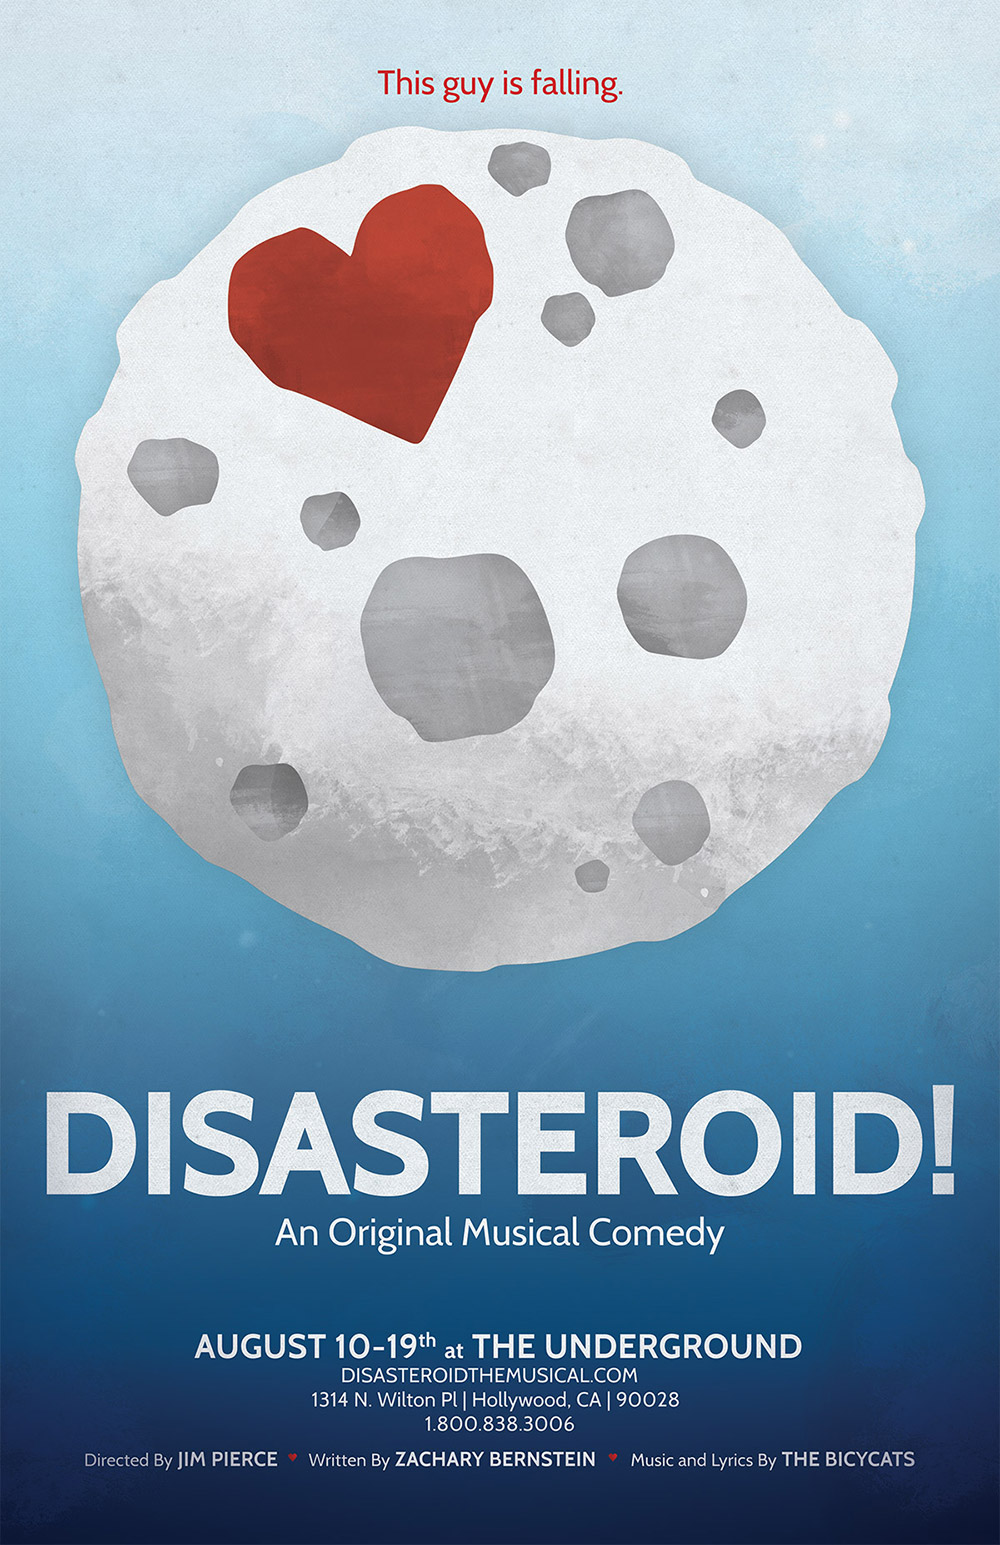 Disasteroid! Posters